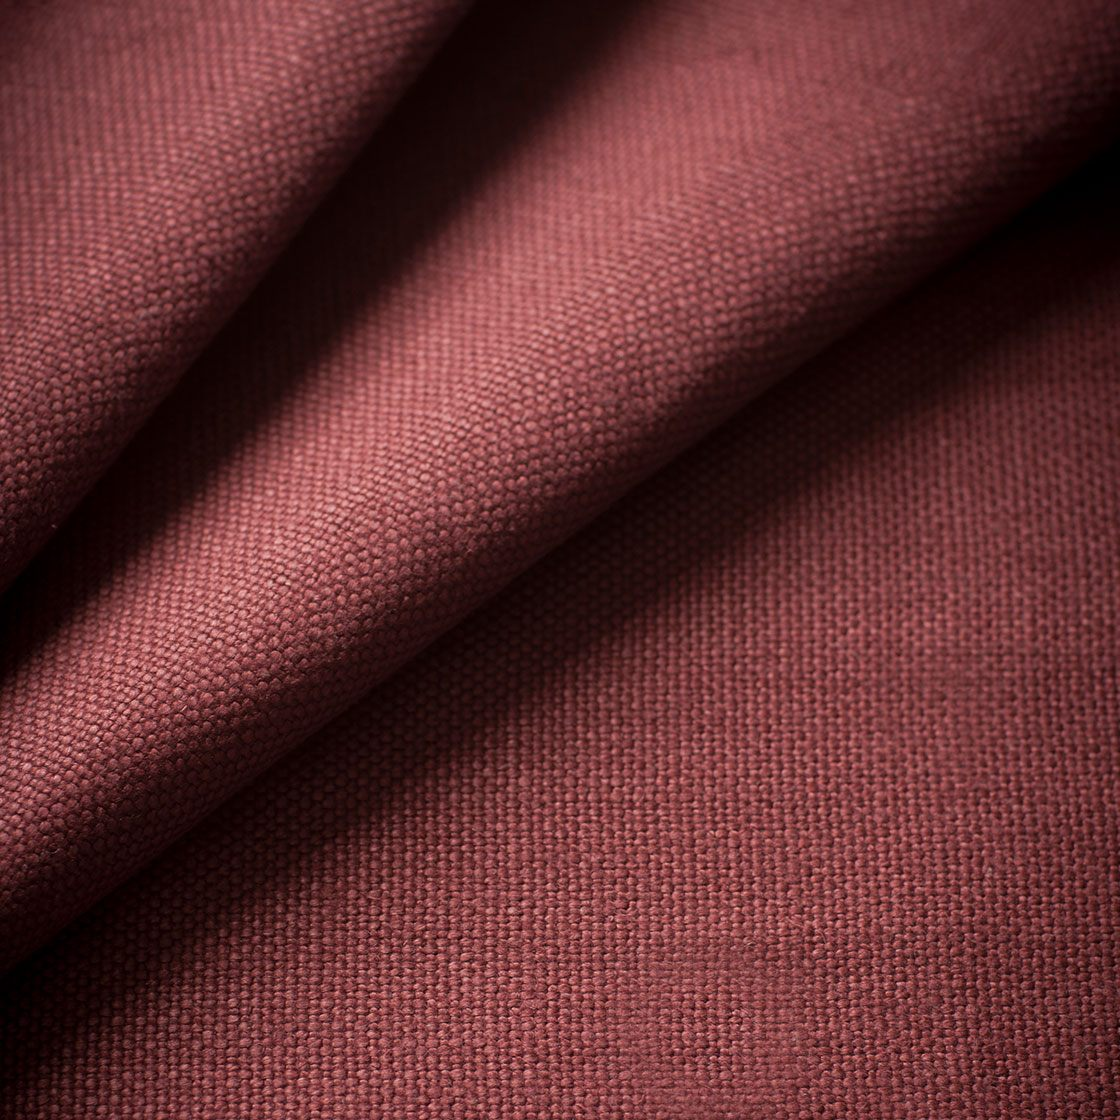 Donegal Linen - Garnet - Beaumont & Fletcher - Beaumont & Fletcher